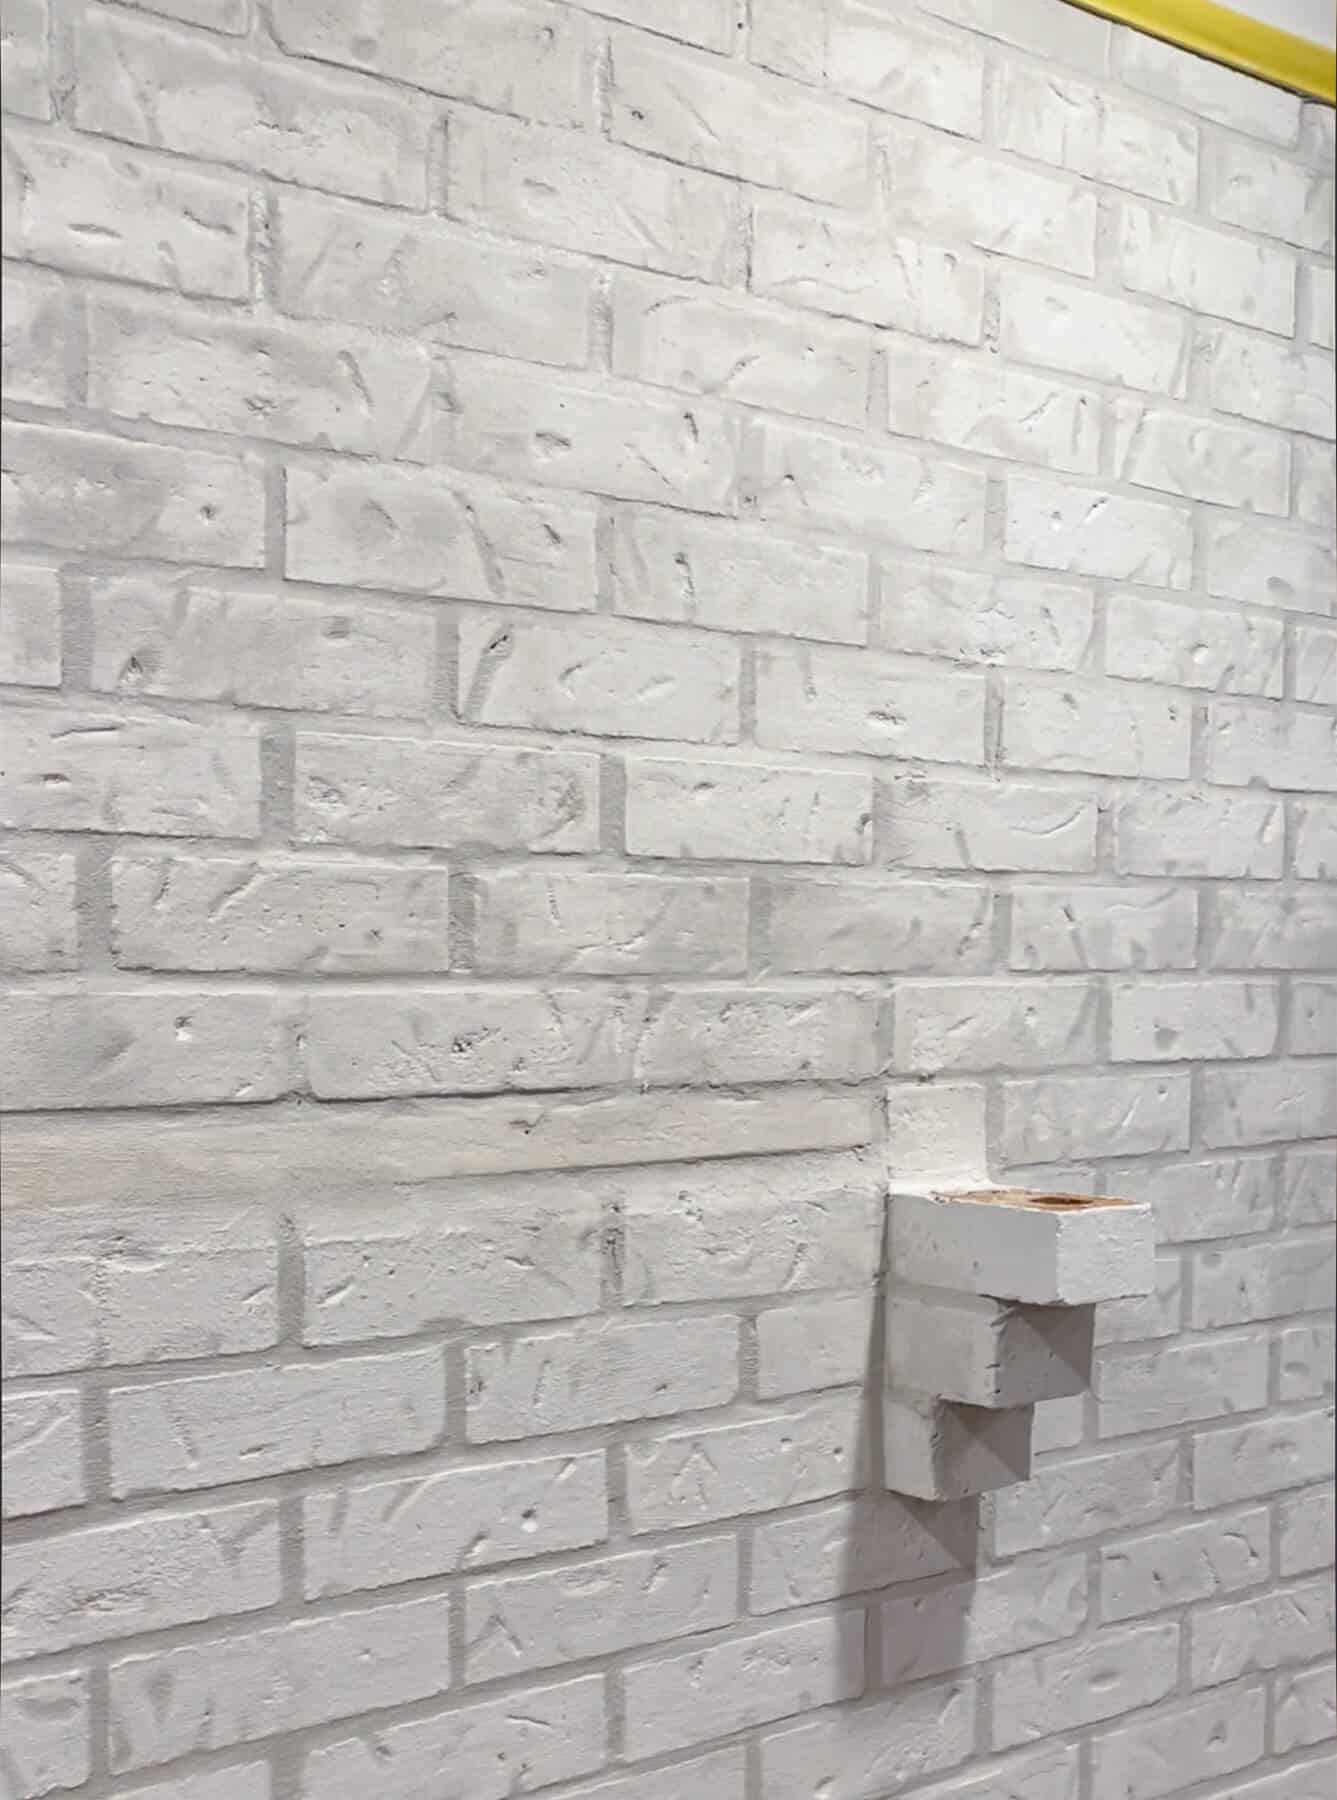 brick with mortar joints filled